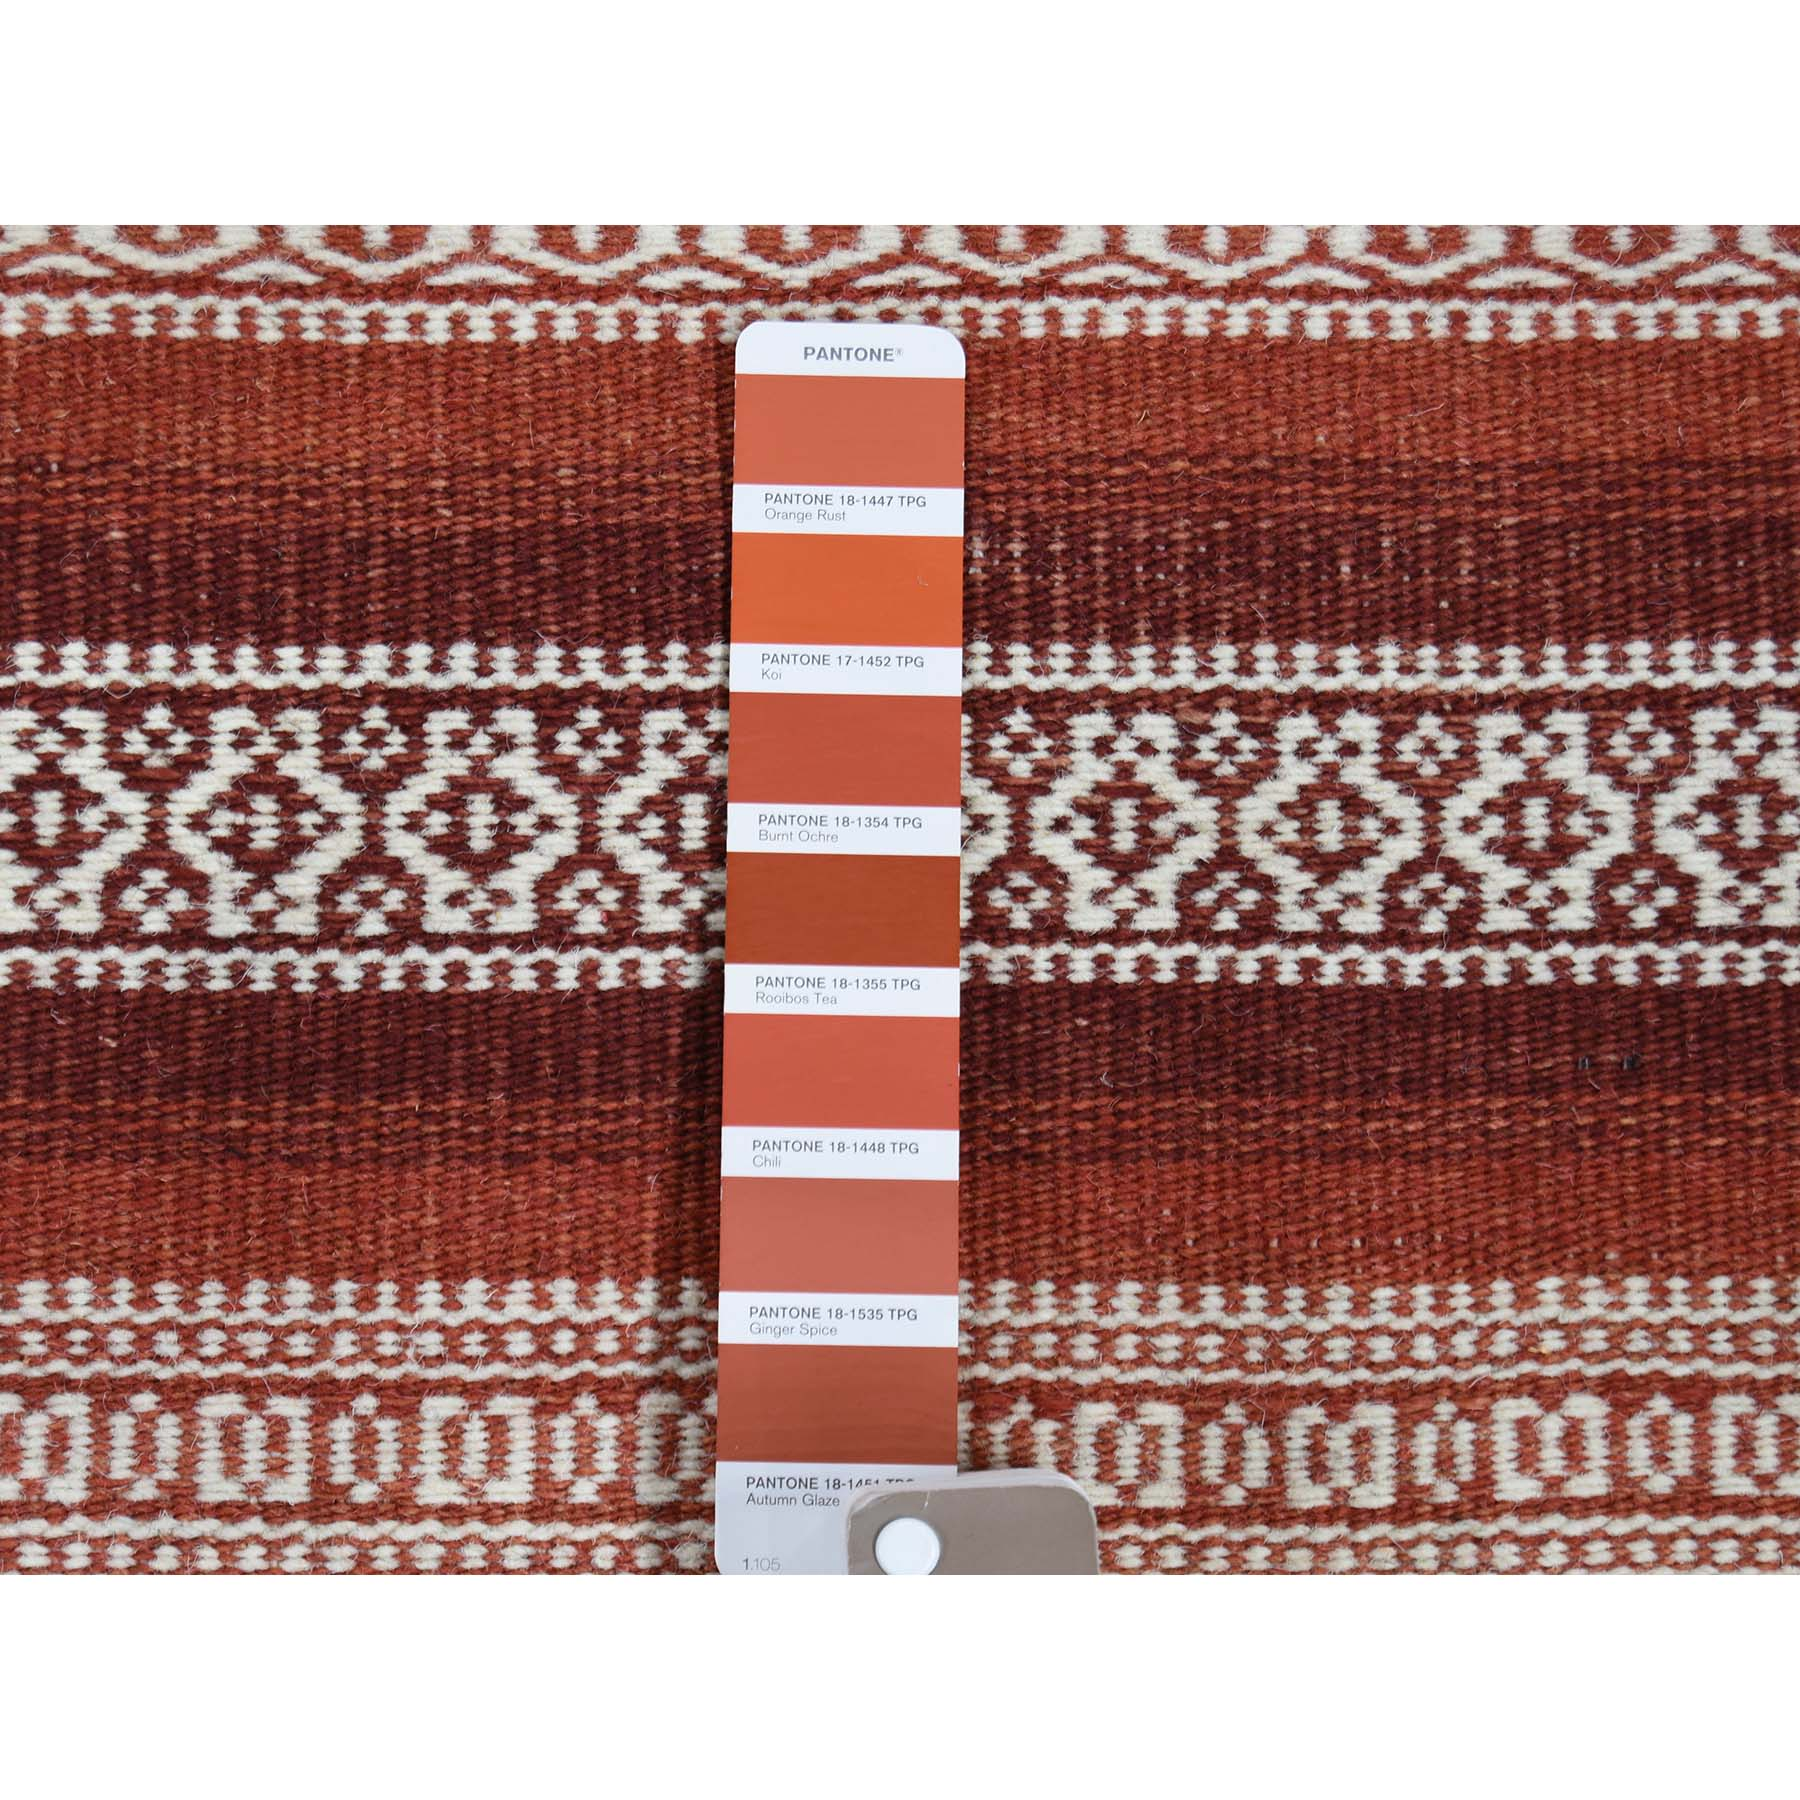 2-10 x5- Hand Woven Flat Weave Striped Design Durie Kilim Oriental Rug